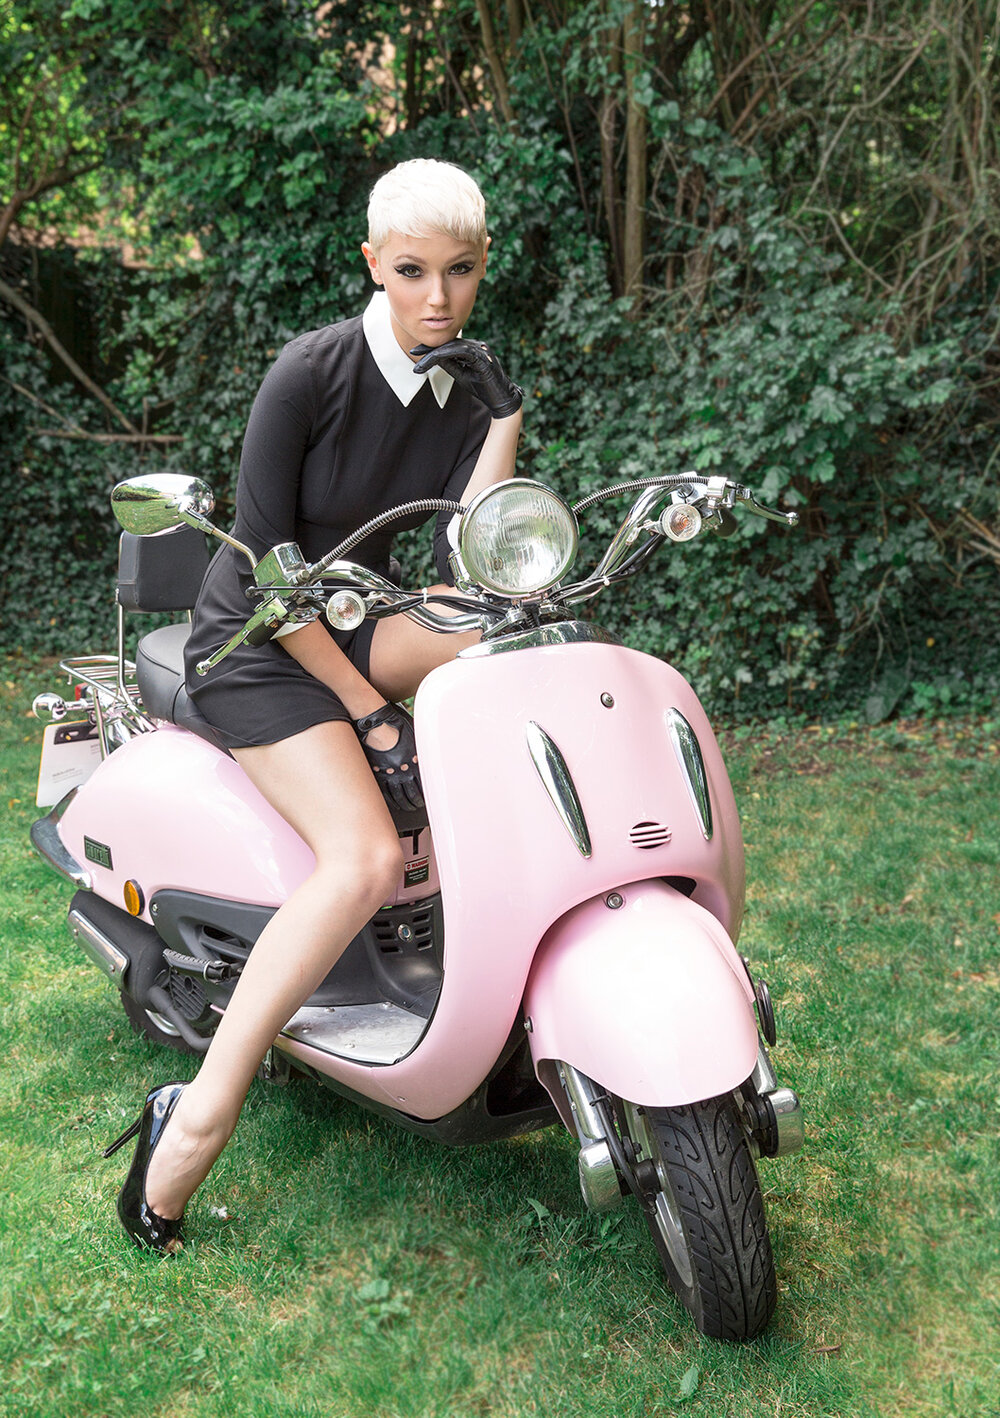 Danis-fave-scooter--0231-web.jpg